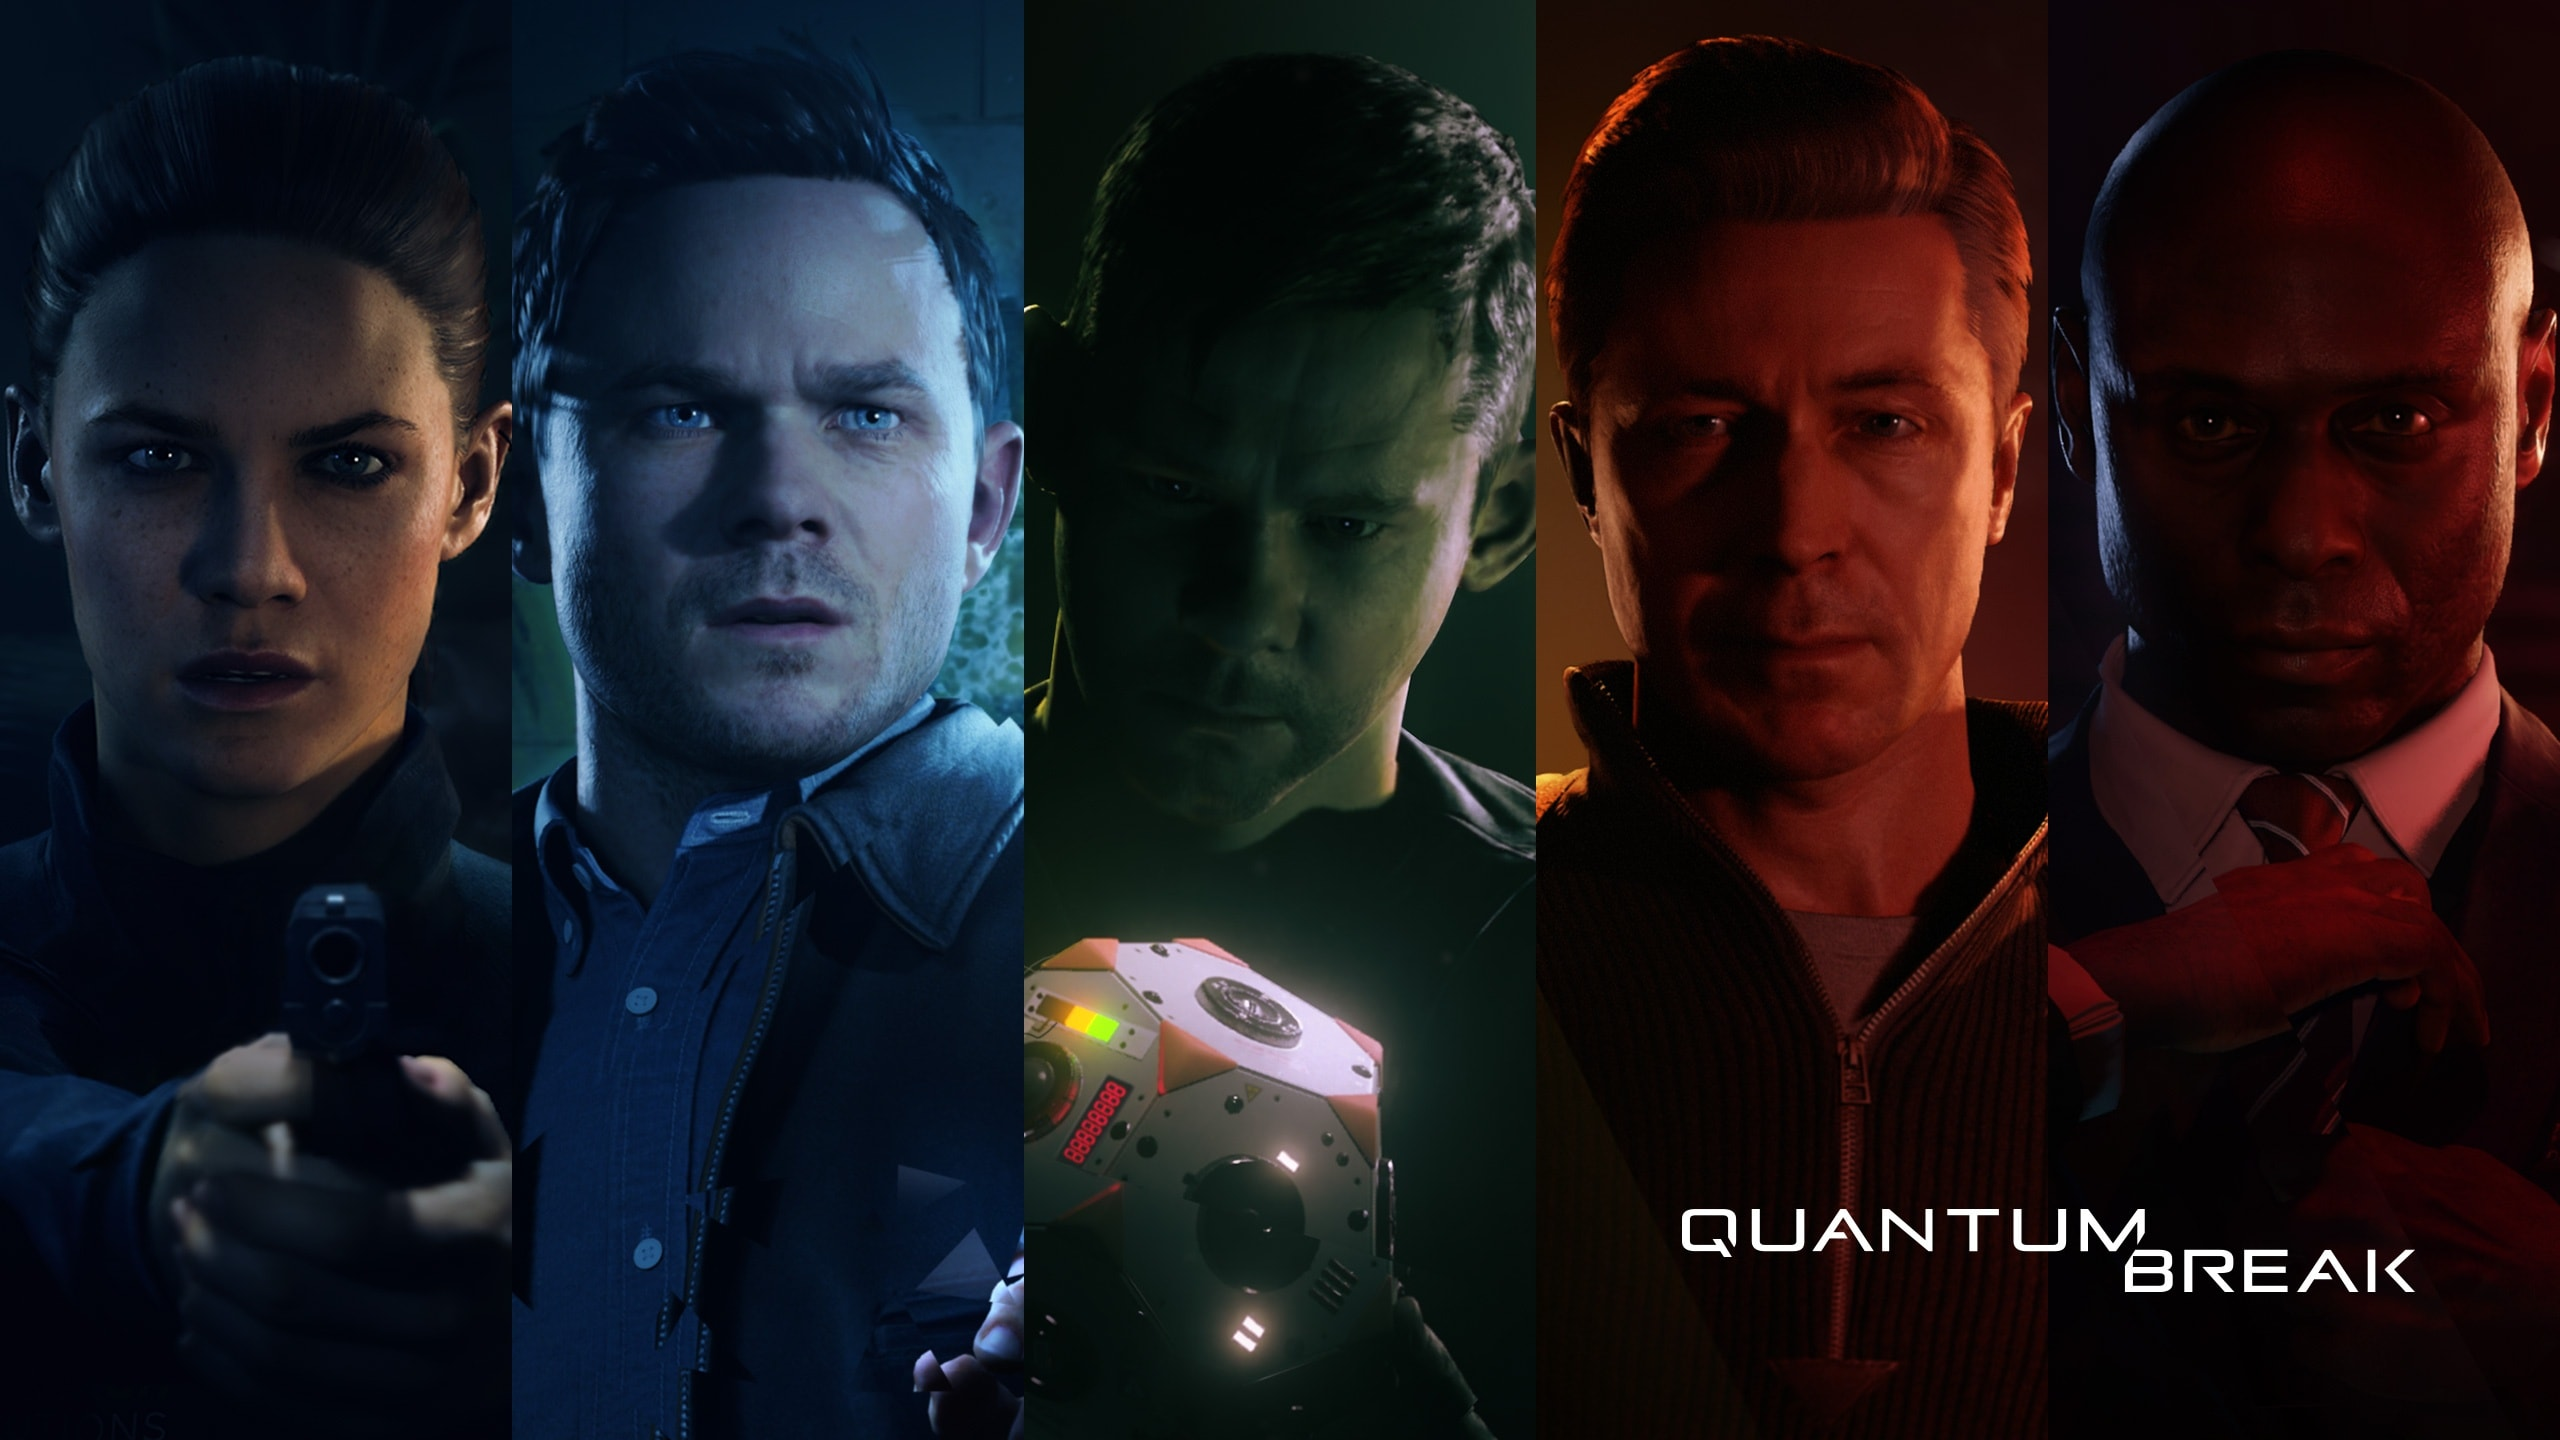 Quantum Break Wallpapers hd